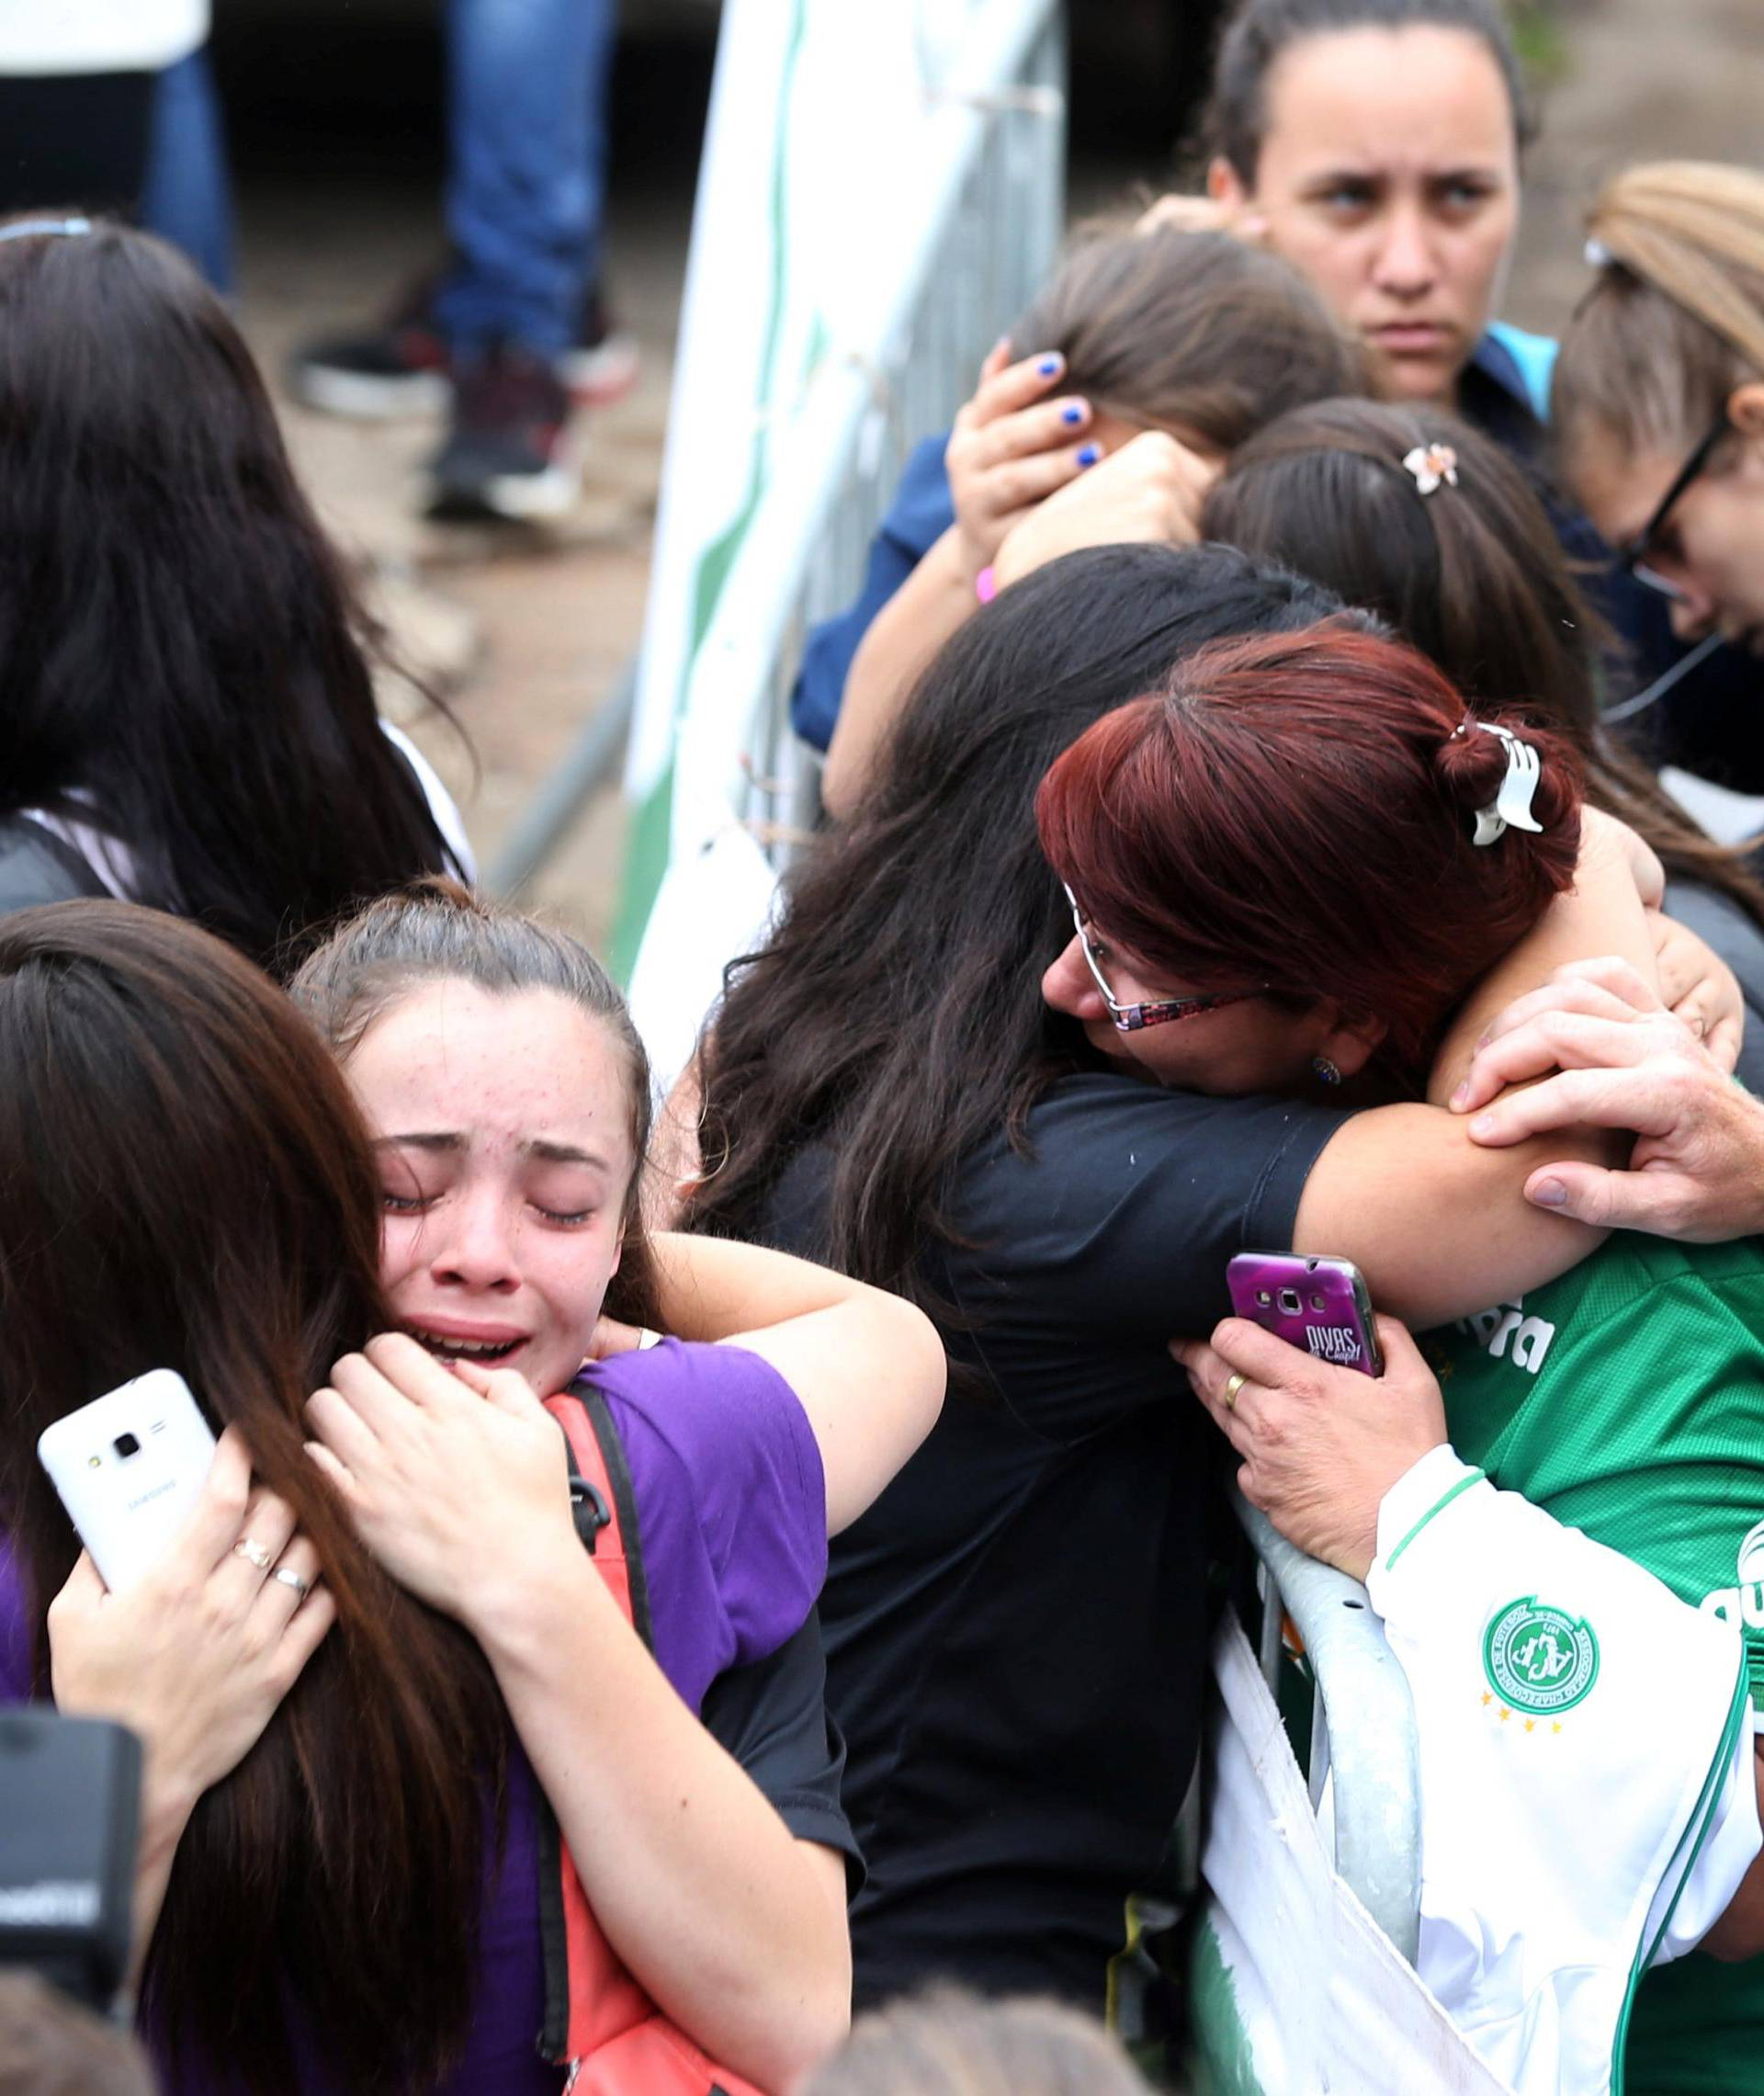 Fans of Chapecoense soccer team react in front of the Arena Conda stadium in Chapeco